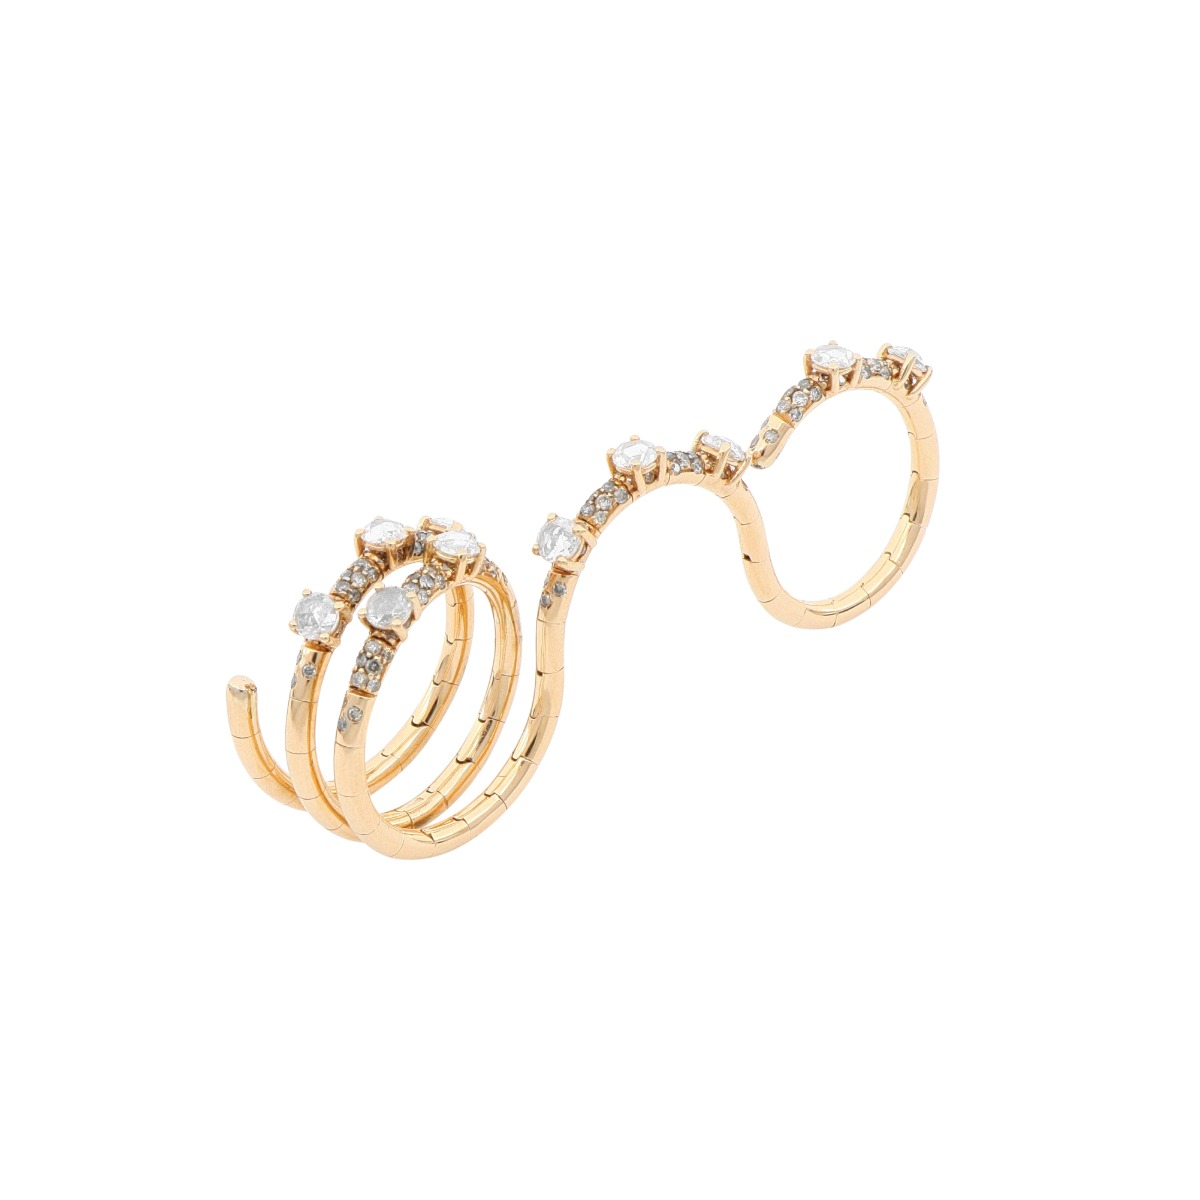 3 in 1 Gold Ring with Diamonds